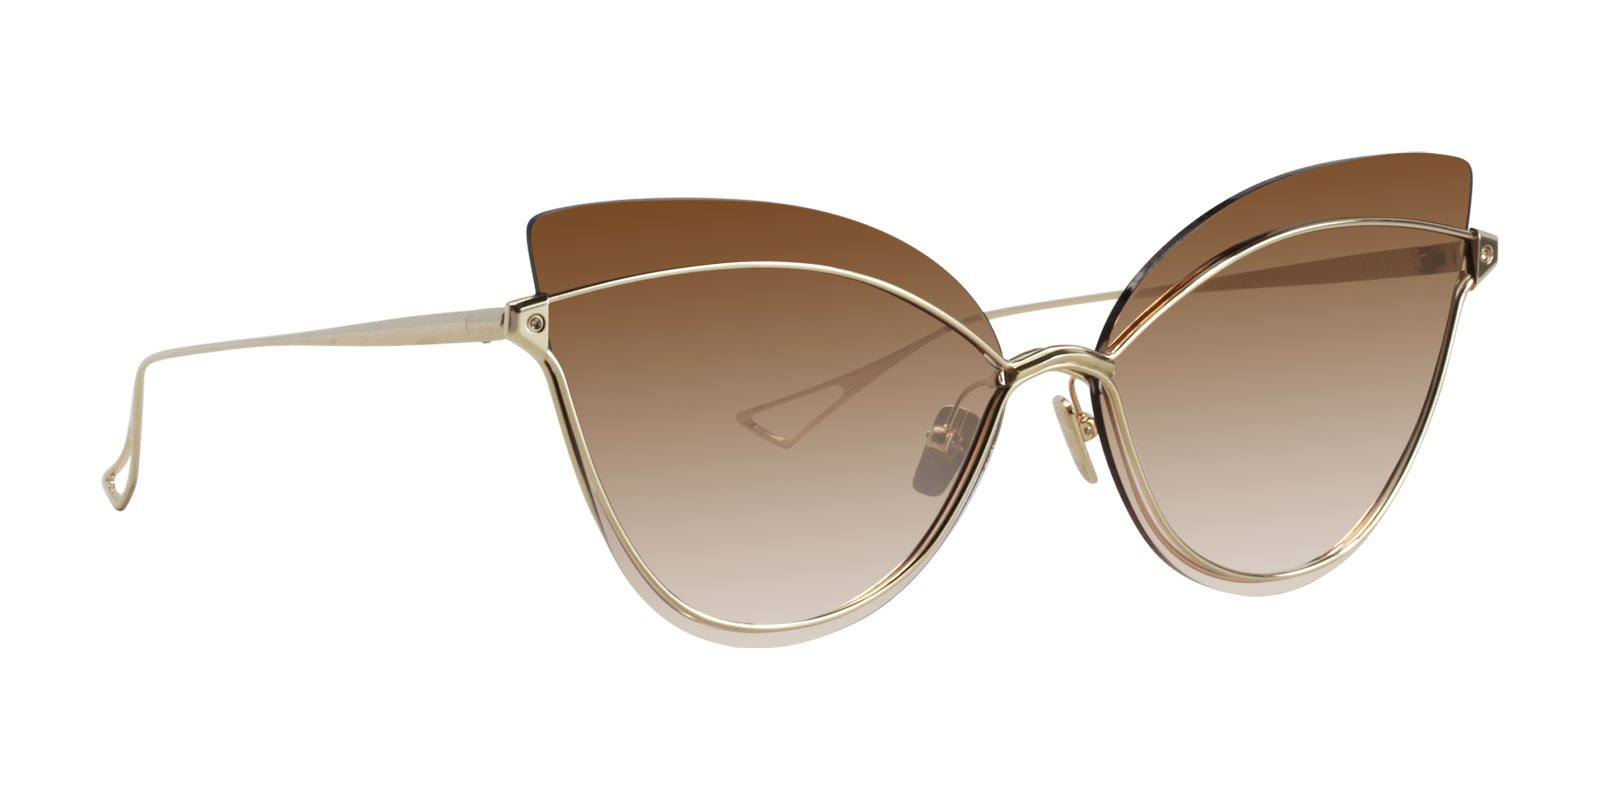 Dita - Nightbird-One White Gold Cat-Eye Women Sunglasses - 66mm-Sunglasses-Designer Eyes